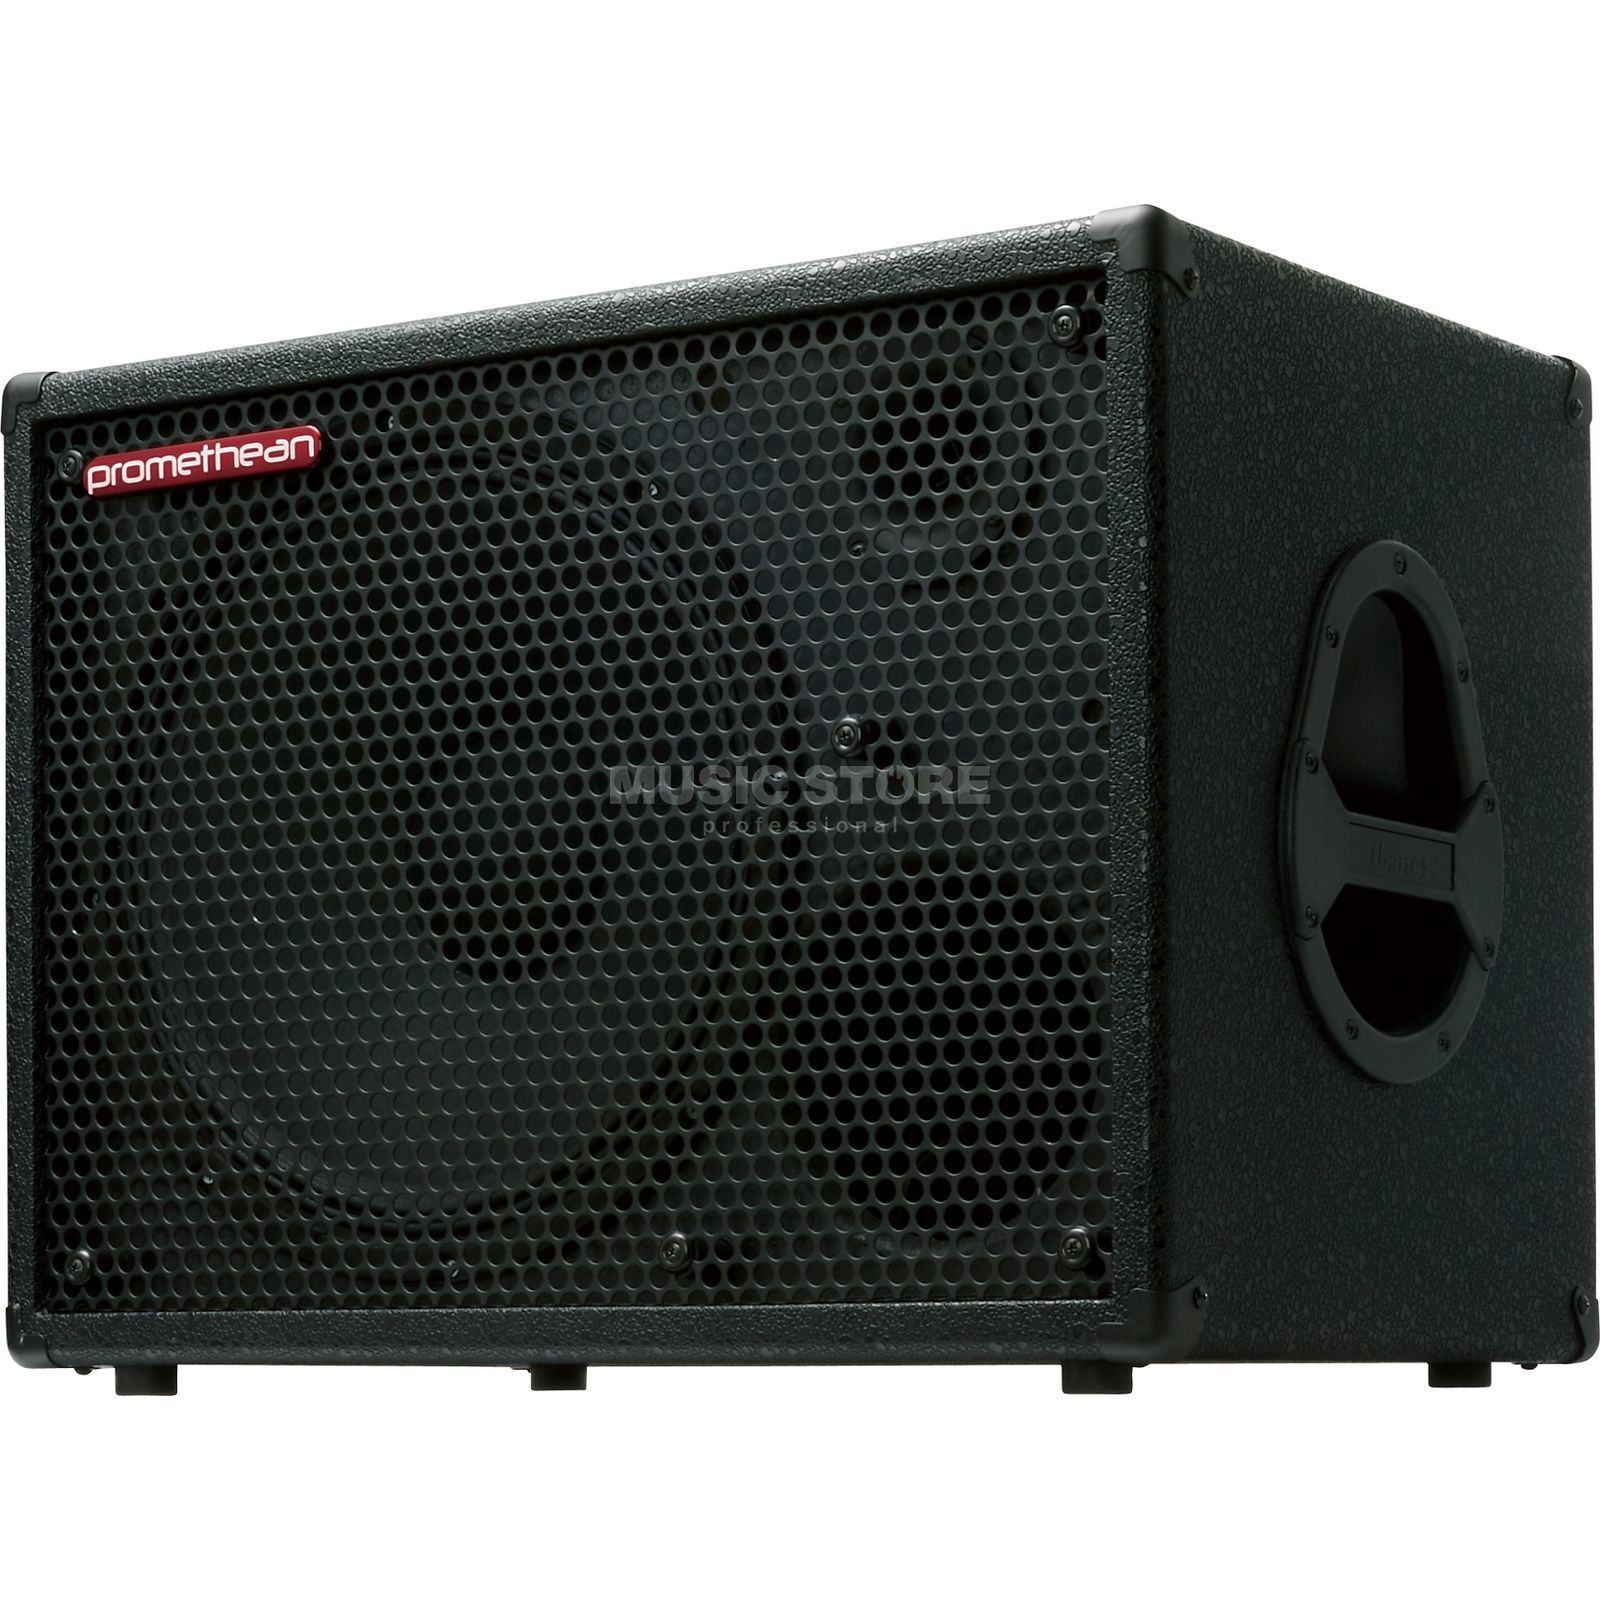 Ibanez P115CC Promethean Bass Speaker  Cabinet   Product Image